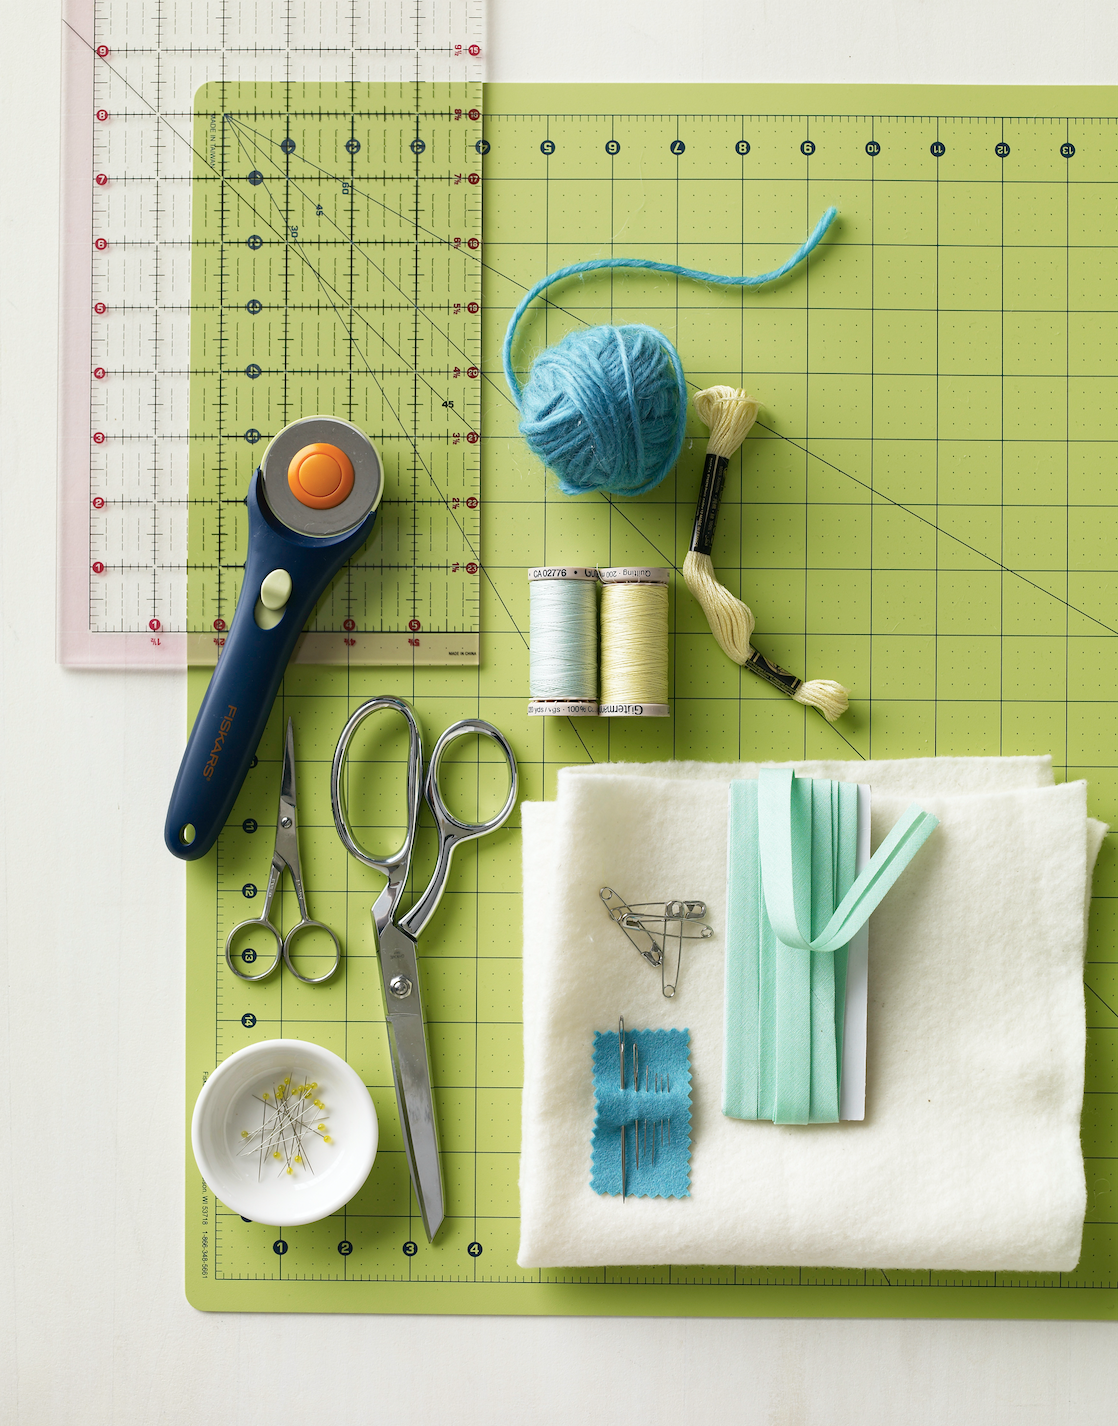 quilting tools and materials